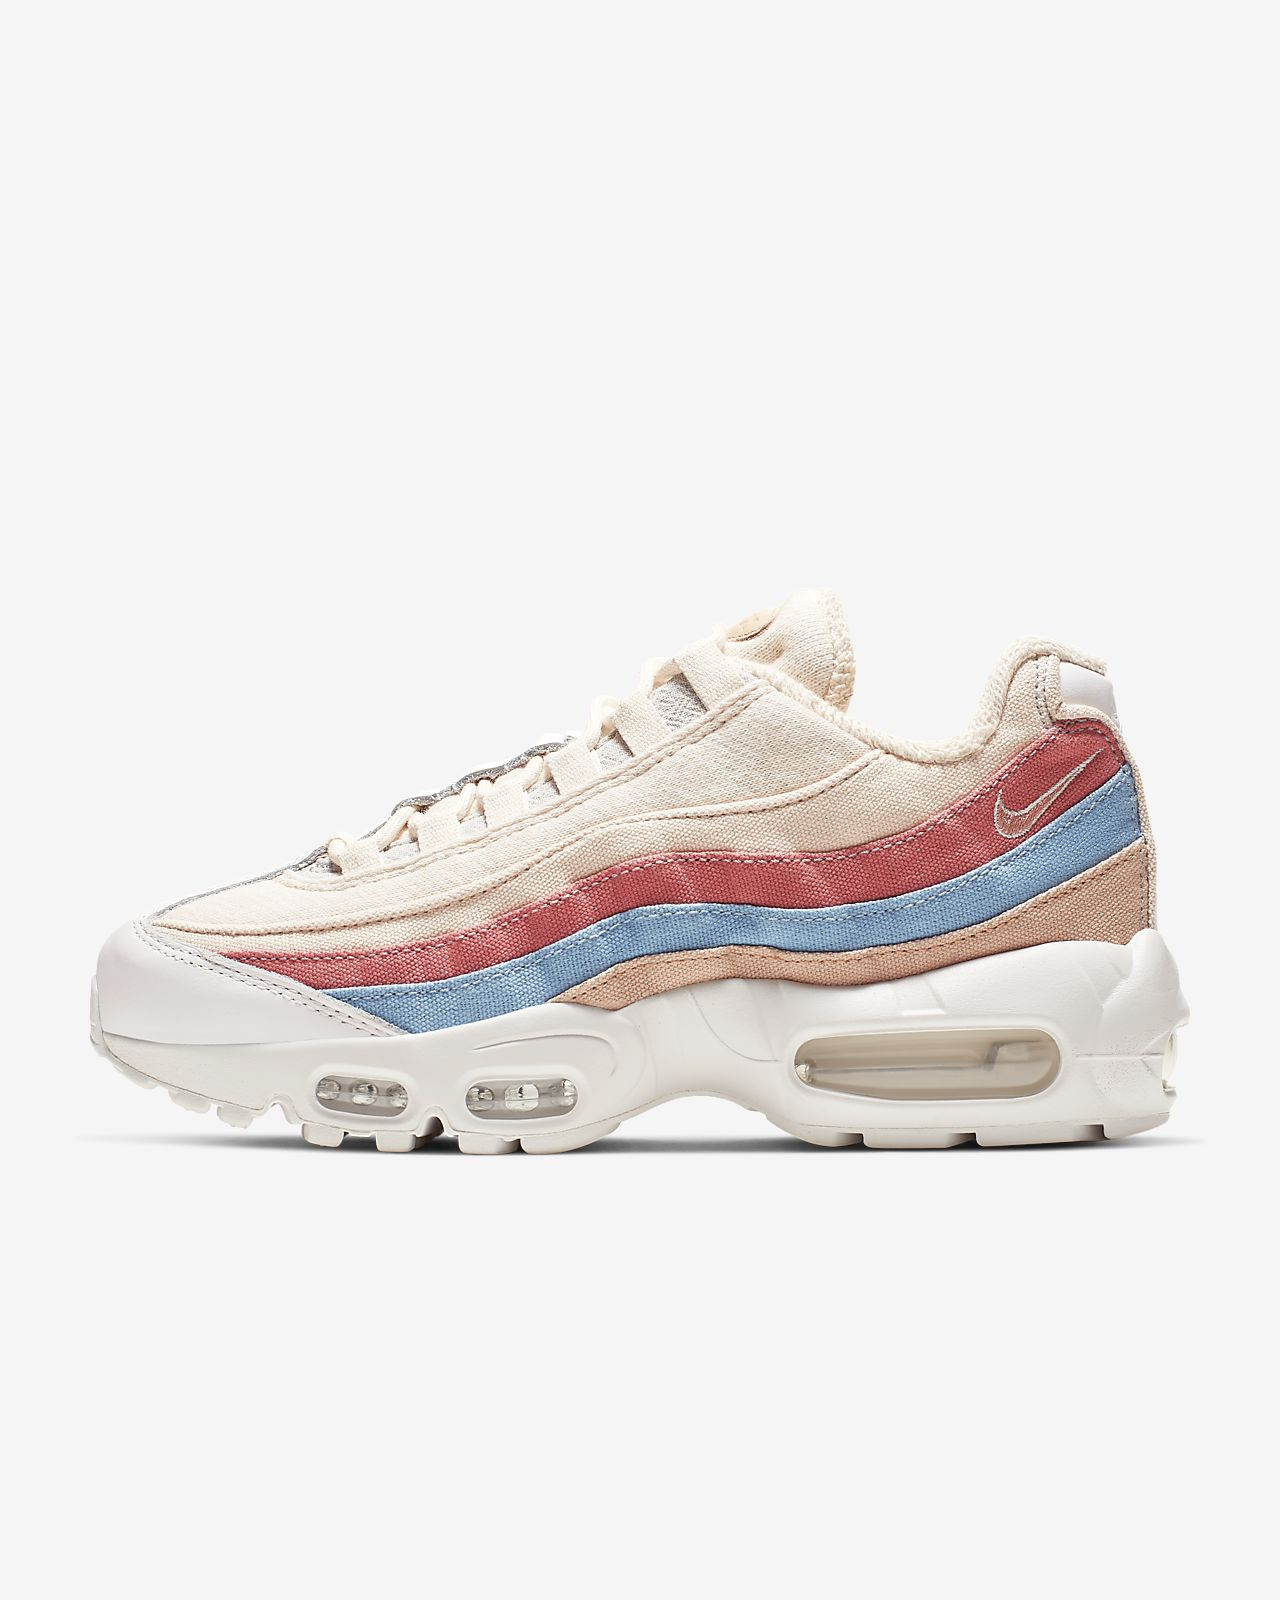 546dd81f0680 Nike Air Max 95 QS Women s Shoe. Nike.com